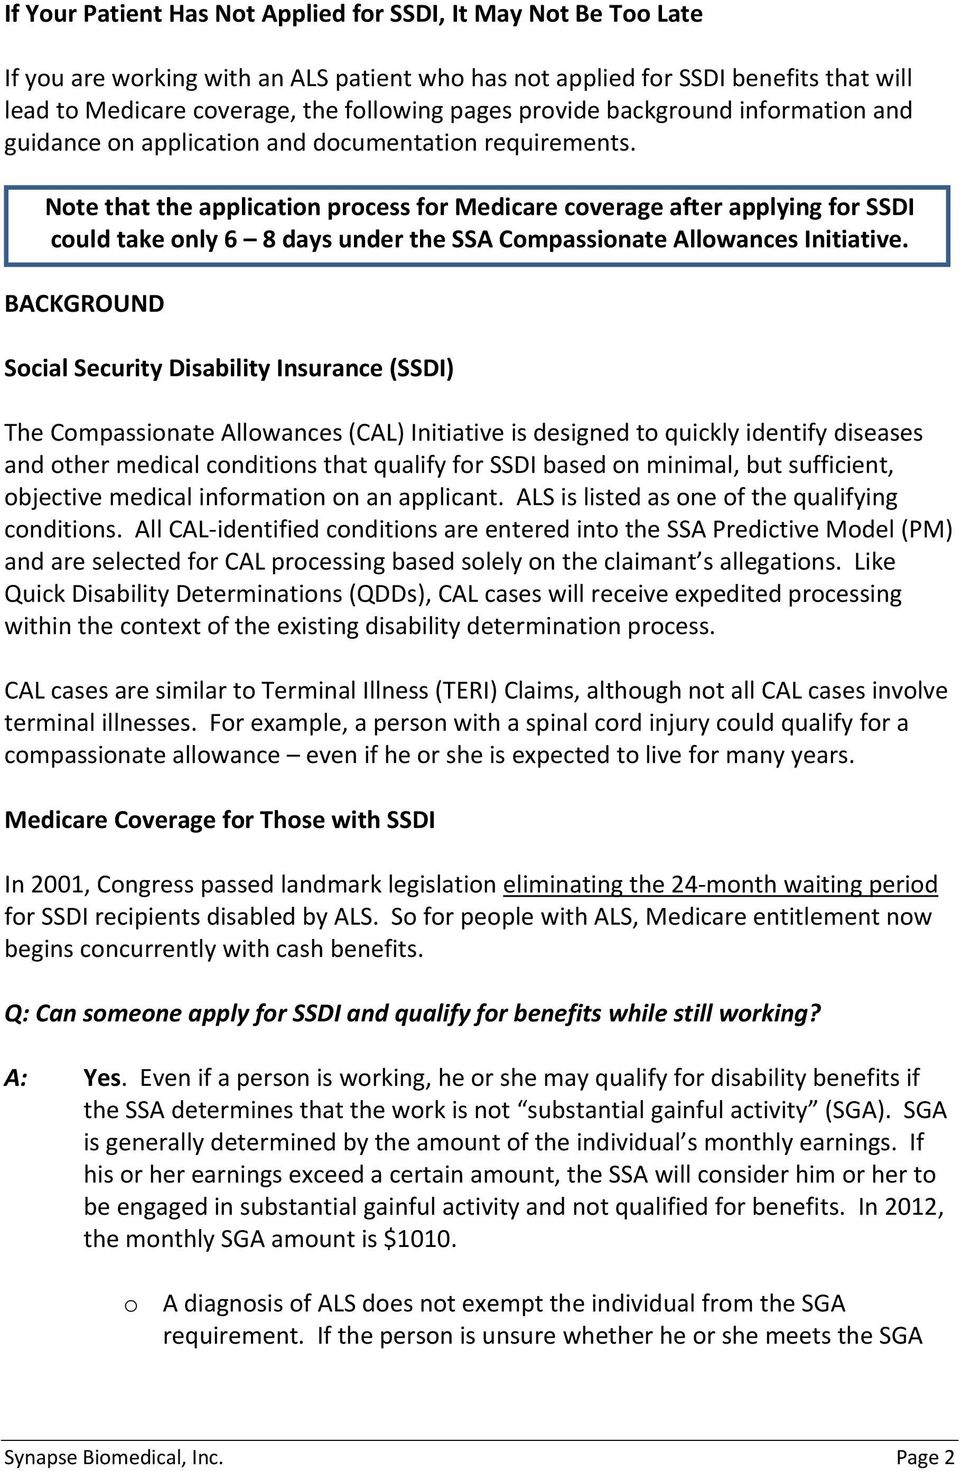 Note that the application process for Medicare coverage after applying for SSDI could take only 6 8 days under the SSA Compassionate Allowances Initiative.